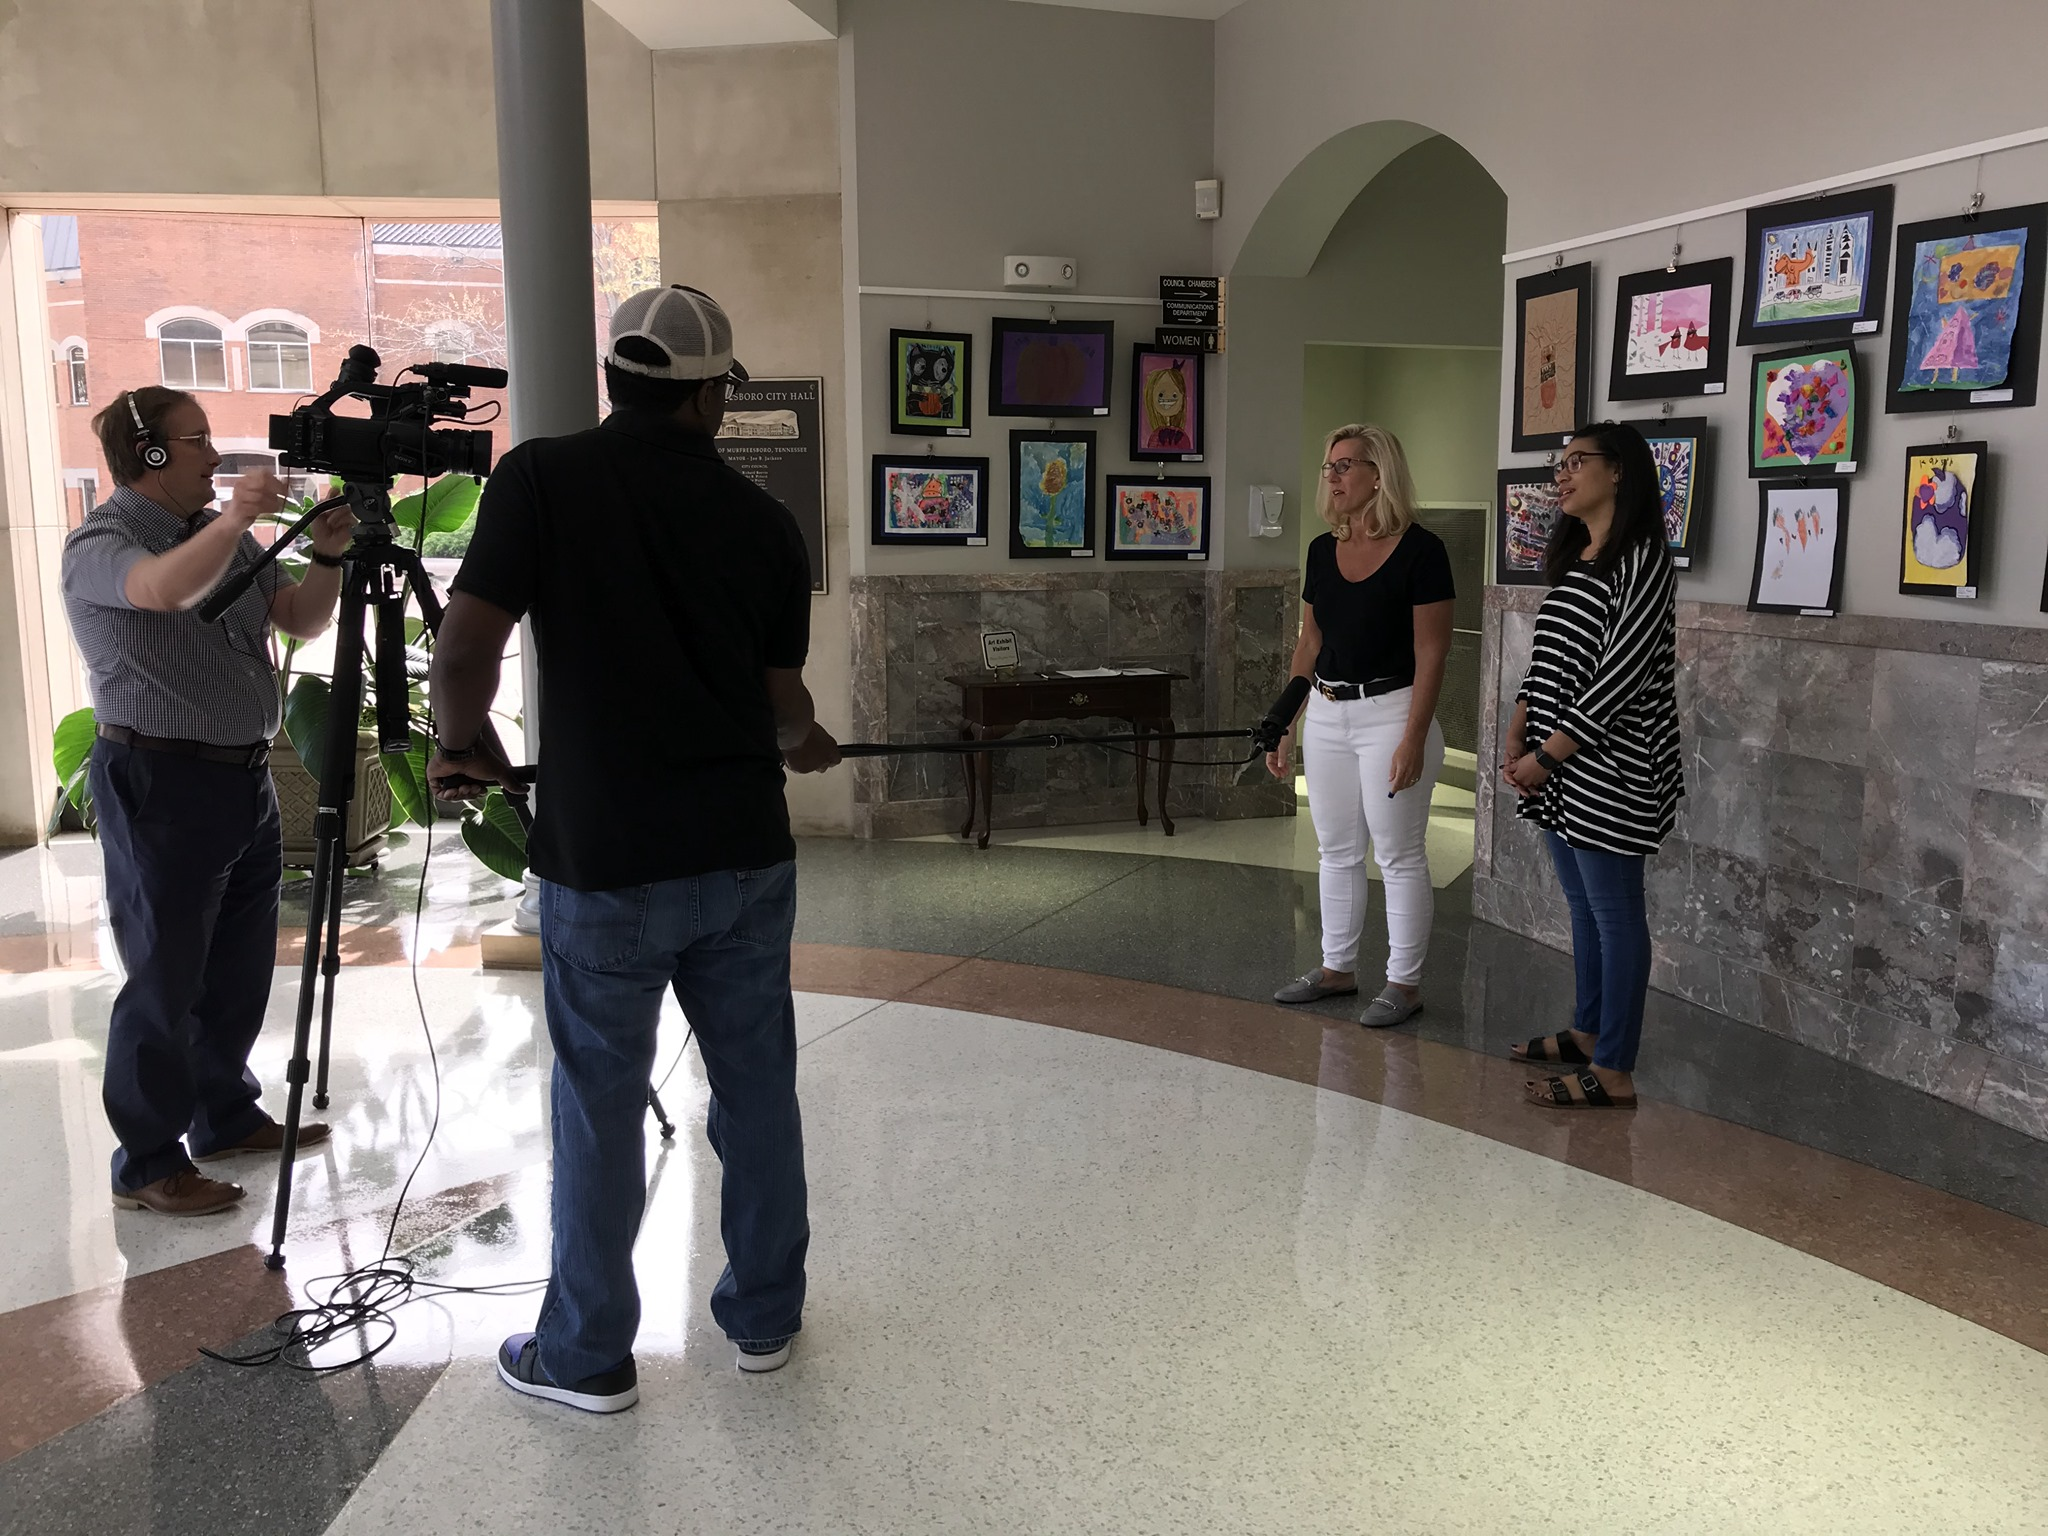 Murfreesboro City Schools to Showcase Artwork of Students this Wednesday Evening - Virtual Art Show